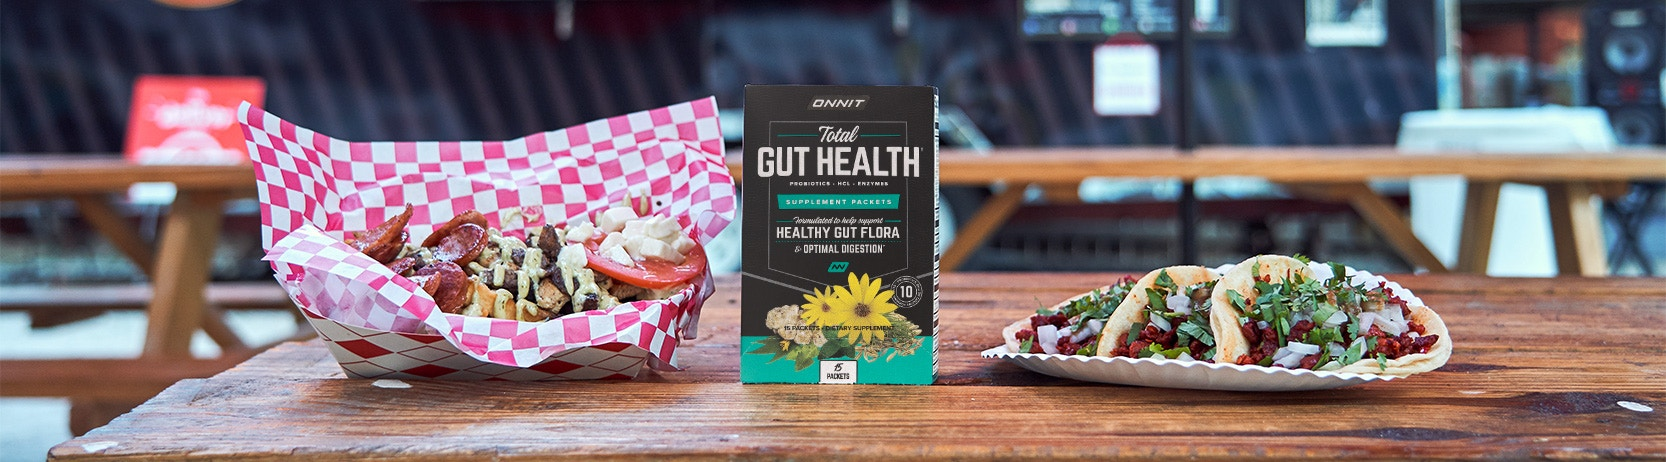 Delicious tacos and a box of Total Gut Health